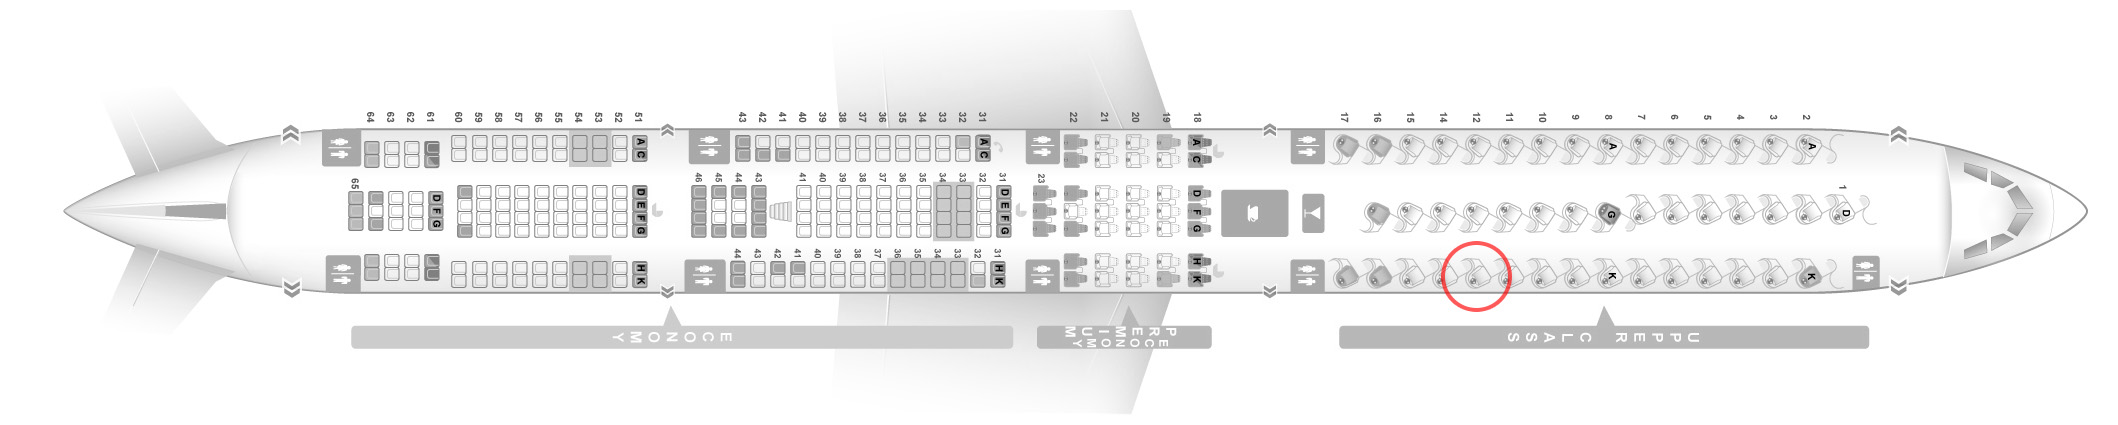 Virgin Atlantic A340-600 seat map